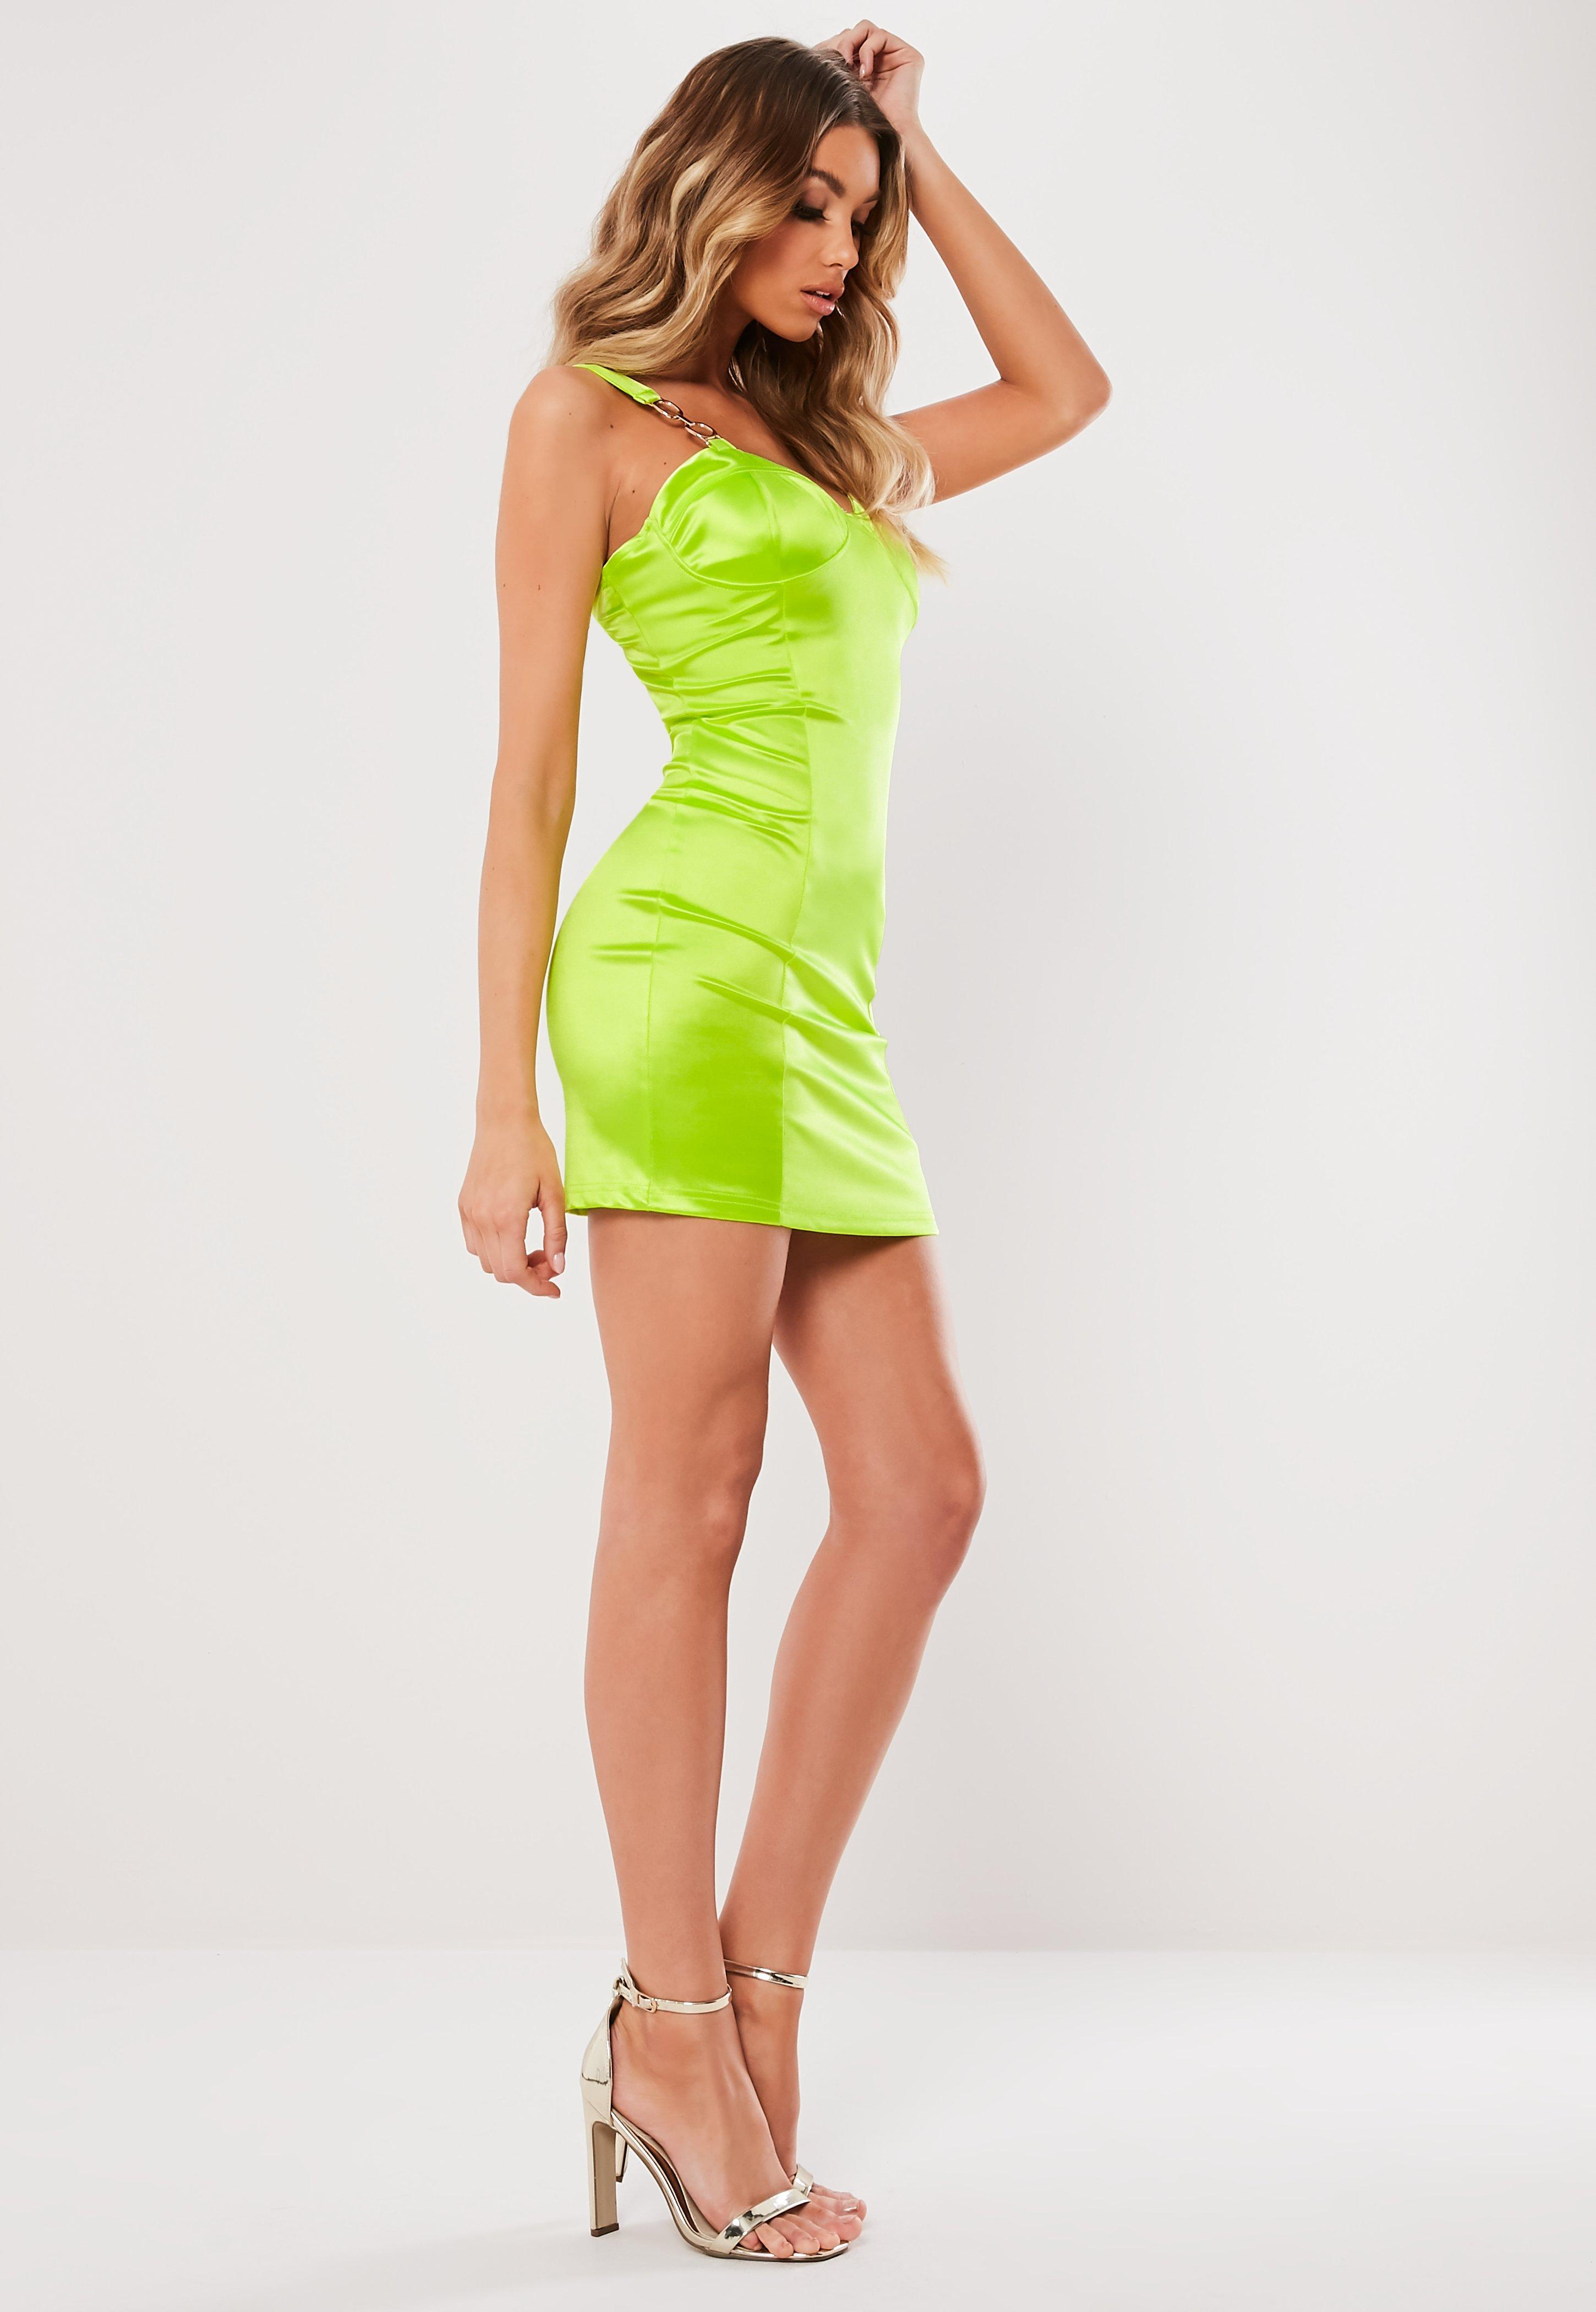 07e99196e5c Missguided Lime Satin Chain Detail Bust Cup Mini Dress in Green - Lyst